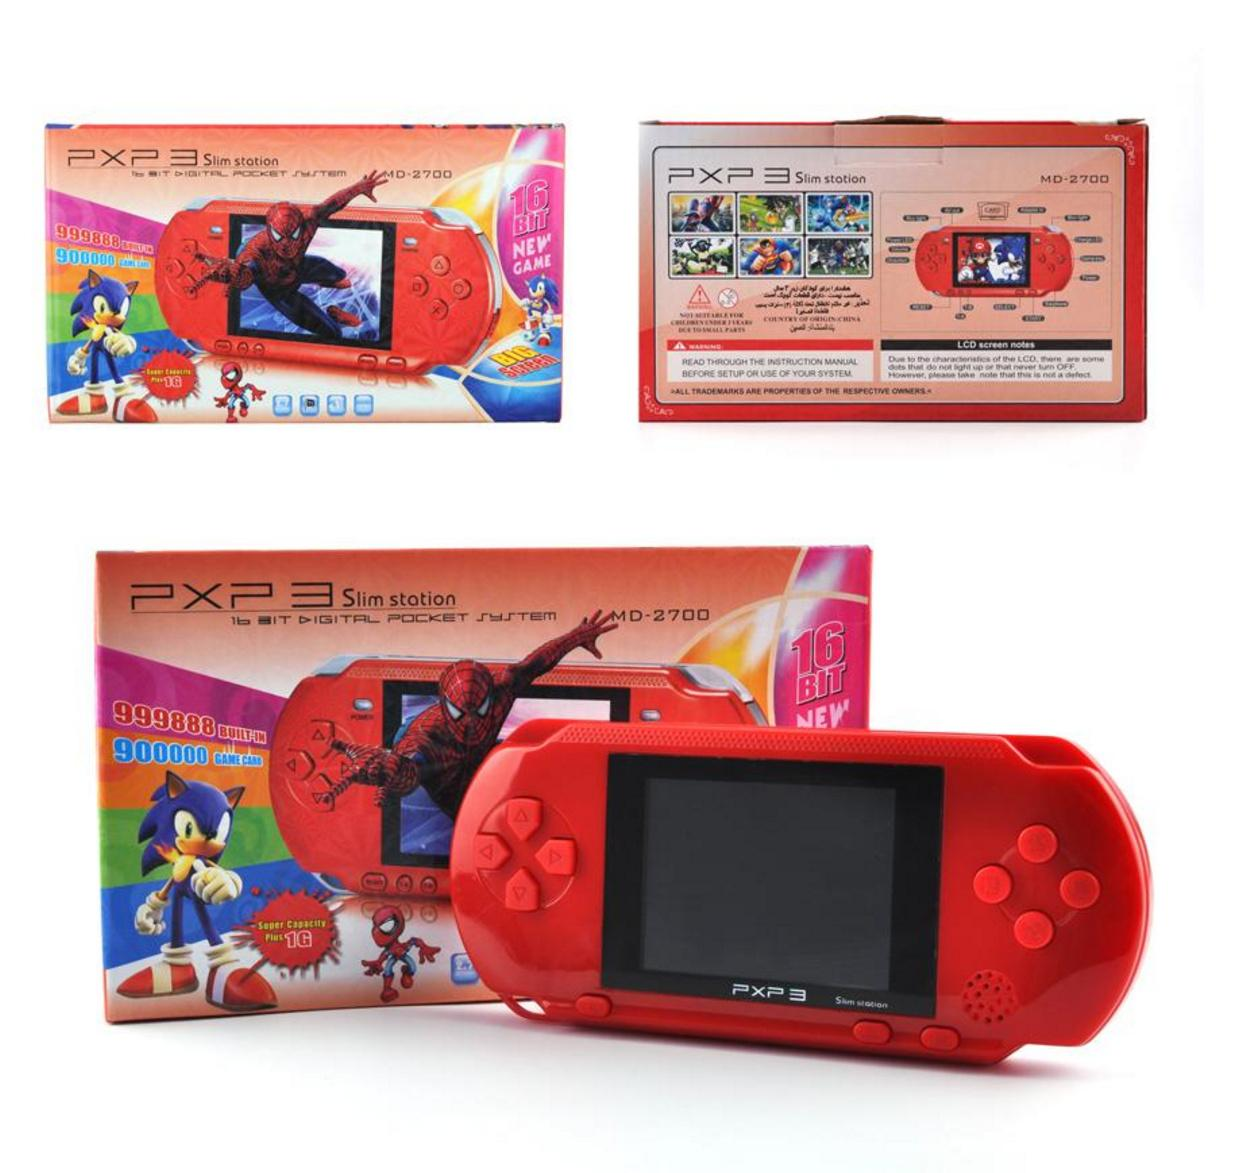 dc592ca0882 Mini Portable PXP3 PXP 16Bit PVP 8Bit Game Video Console TV Out Games Slim  Station Gaming Console Player Child Xmas Best Gift Wholesale Video Games  All Game ...